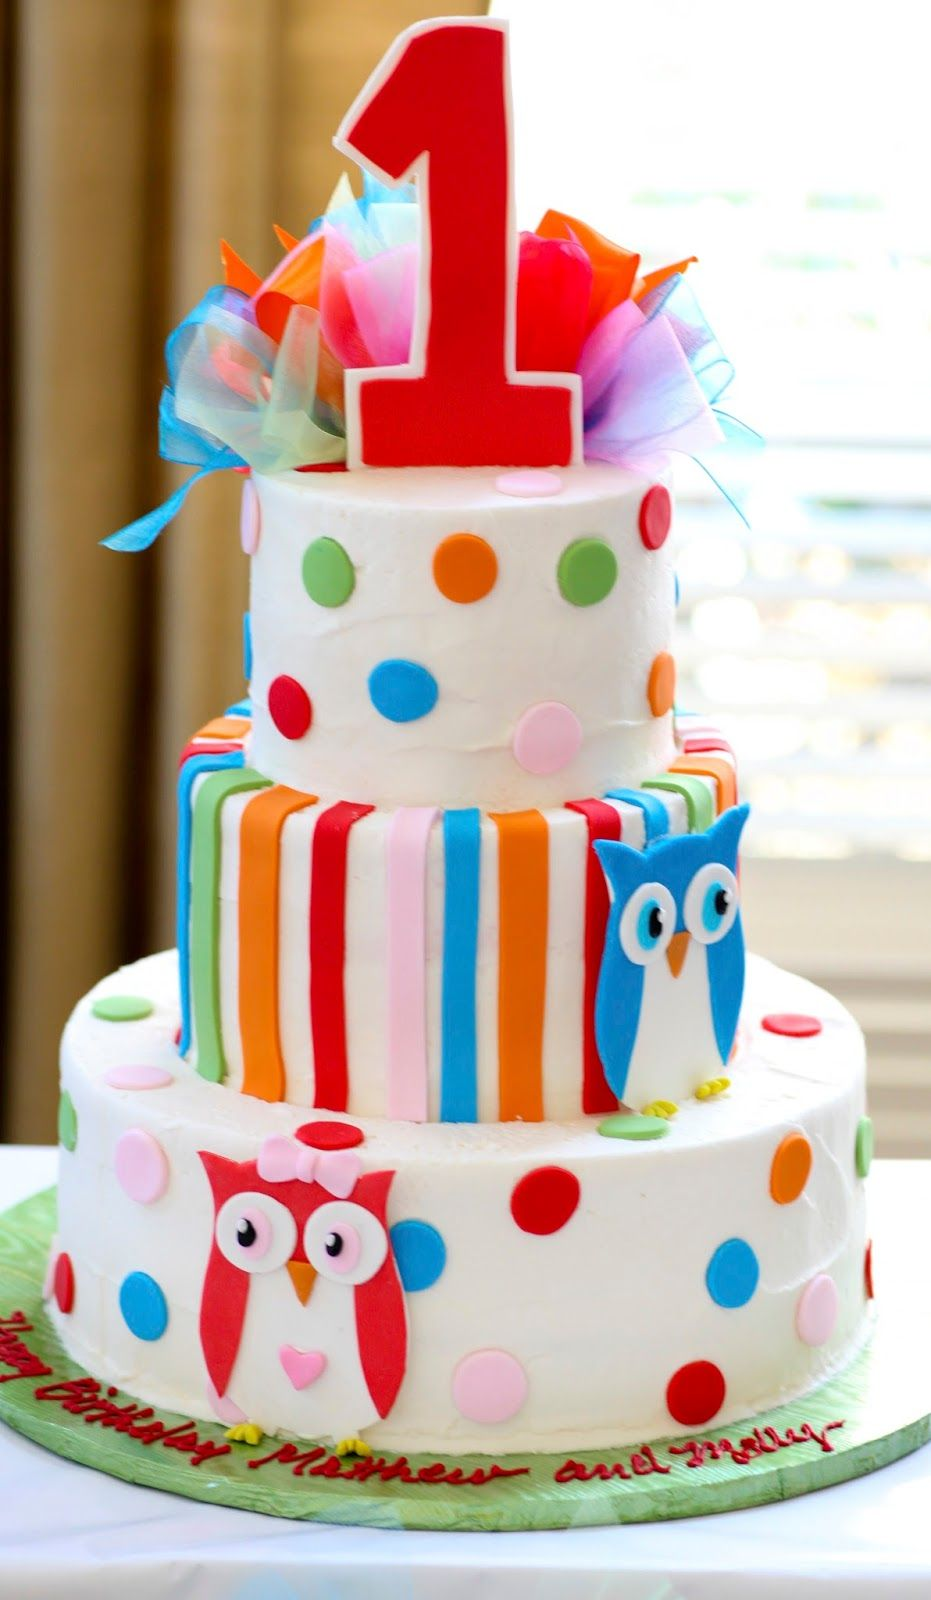 Cake Ideas For Boy Girl Twins : Twins First Birthday Cake Ideas ... birthday banner a ...